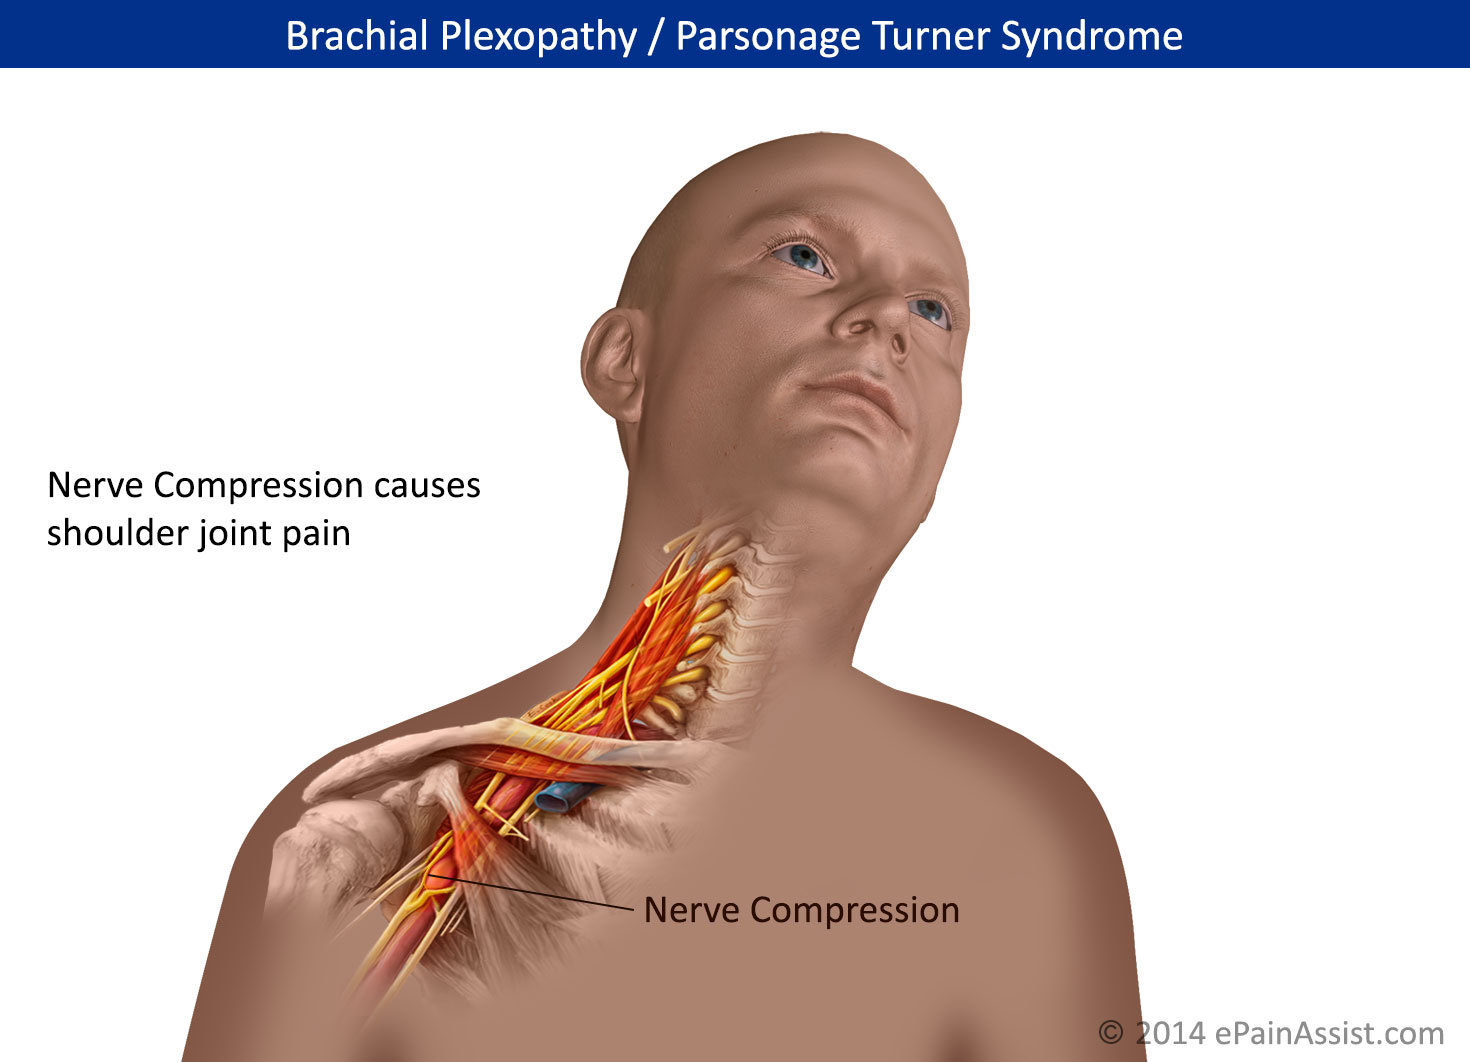 Parsonage Turner Syndrome or Brachial Plexopathy